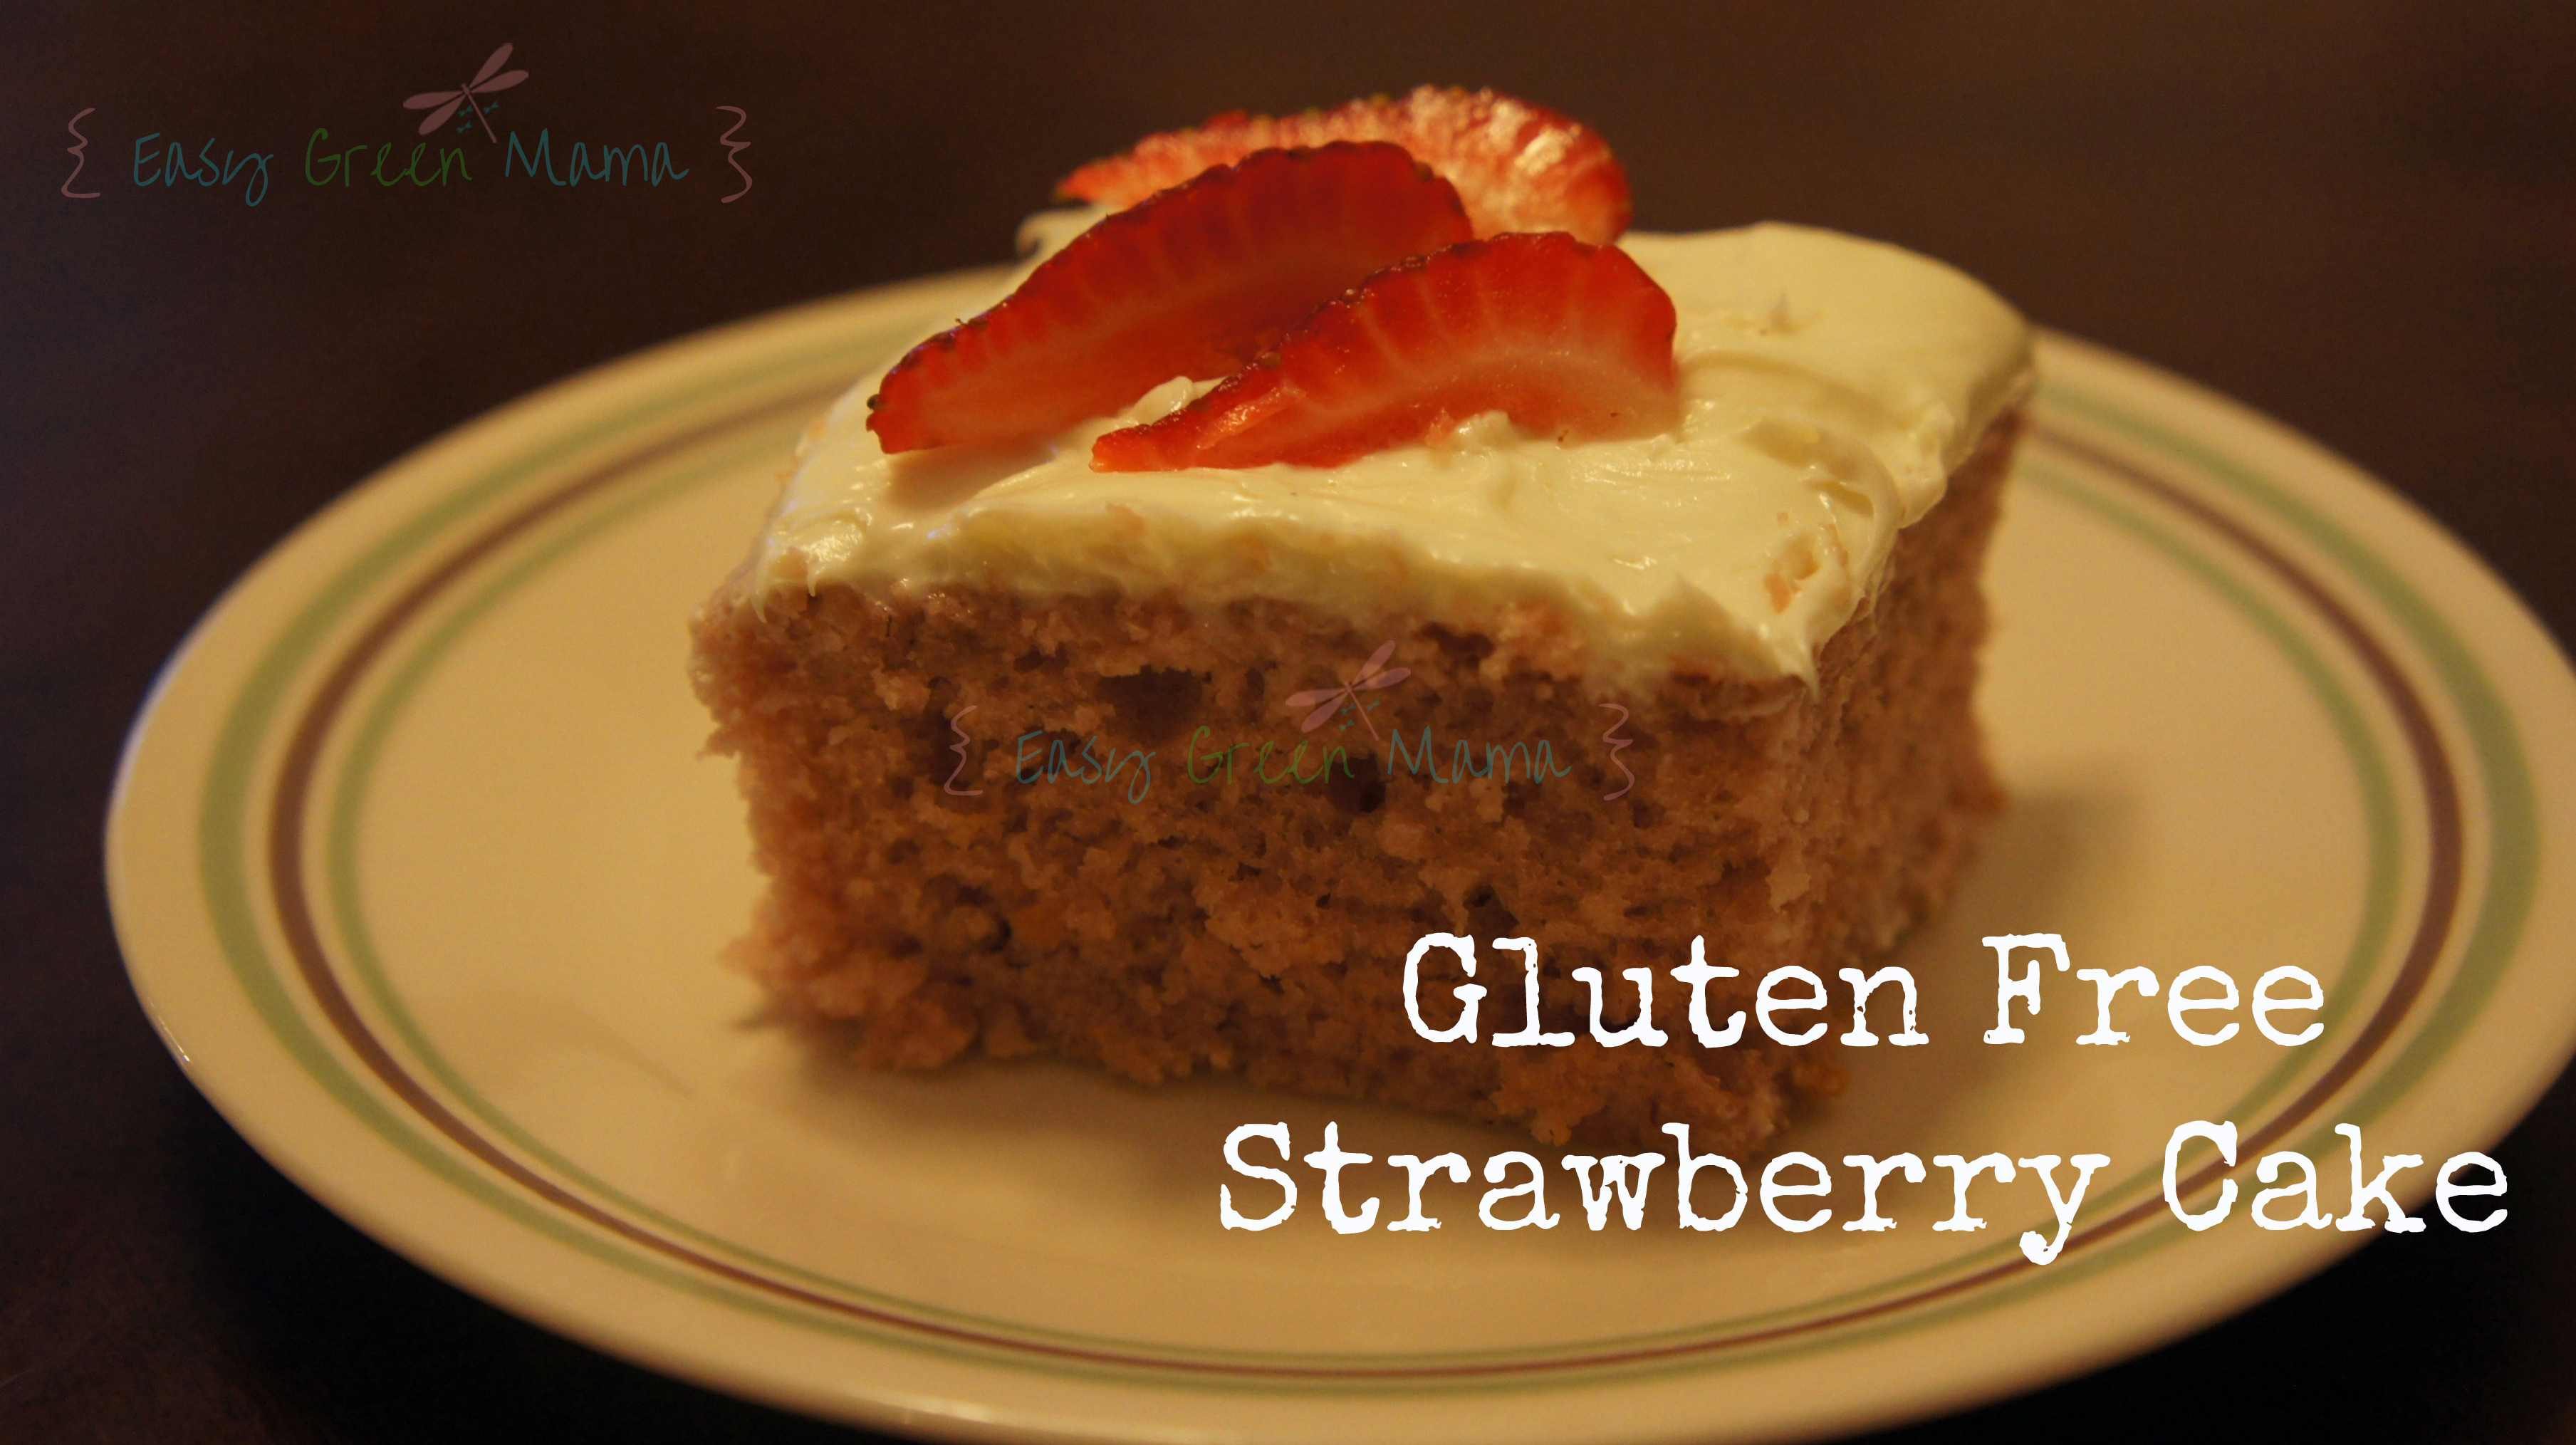 Gluten Free Strawberry Cake - Easy Green Mom